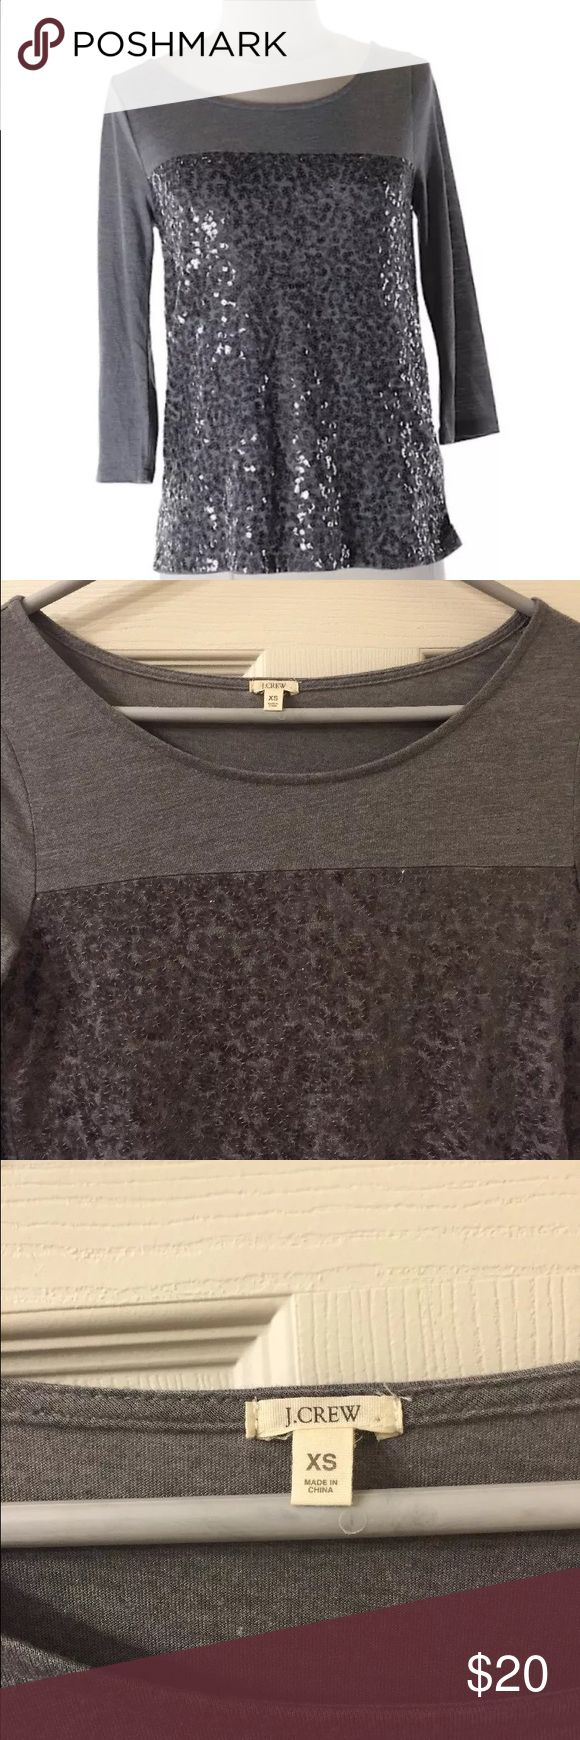 """Jcrew Ladies Scoop Neckline Embellished Top. XS Jcrew Ladies Scoop Neckline beautifully Embellished Top/shirt. 3/4 sleeves. Measurements 34"""" chest. 24"""" length.   Size XS (fits like a small)  65% polyester 35% rayon. Good pre owned condition j crew Tops"""